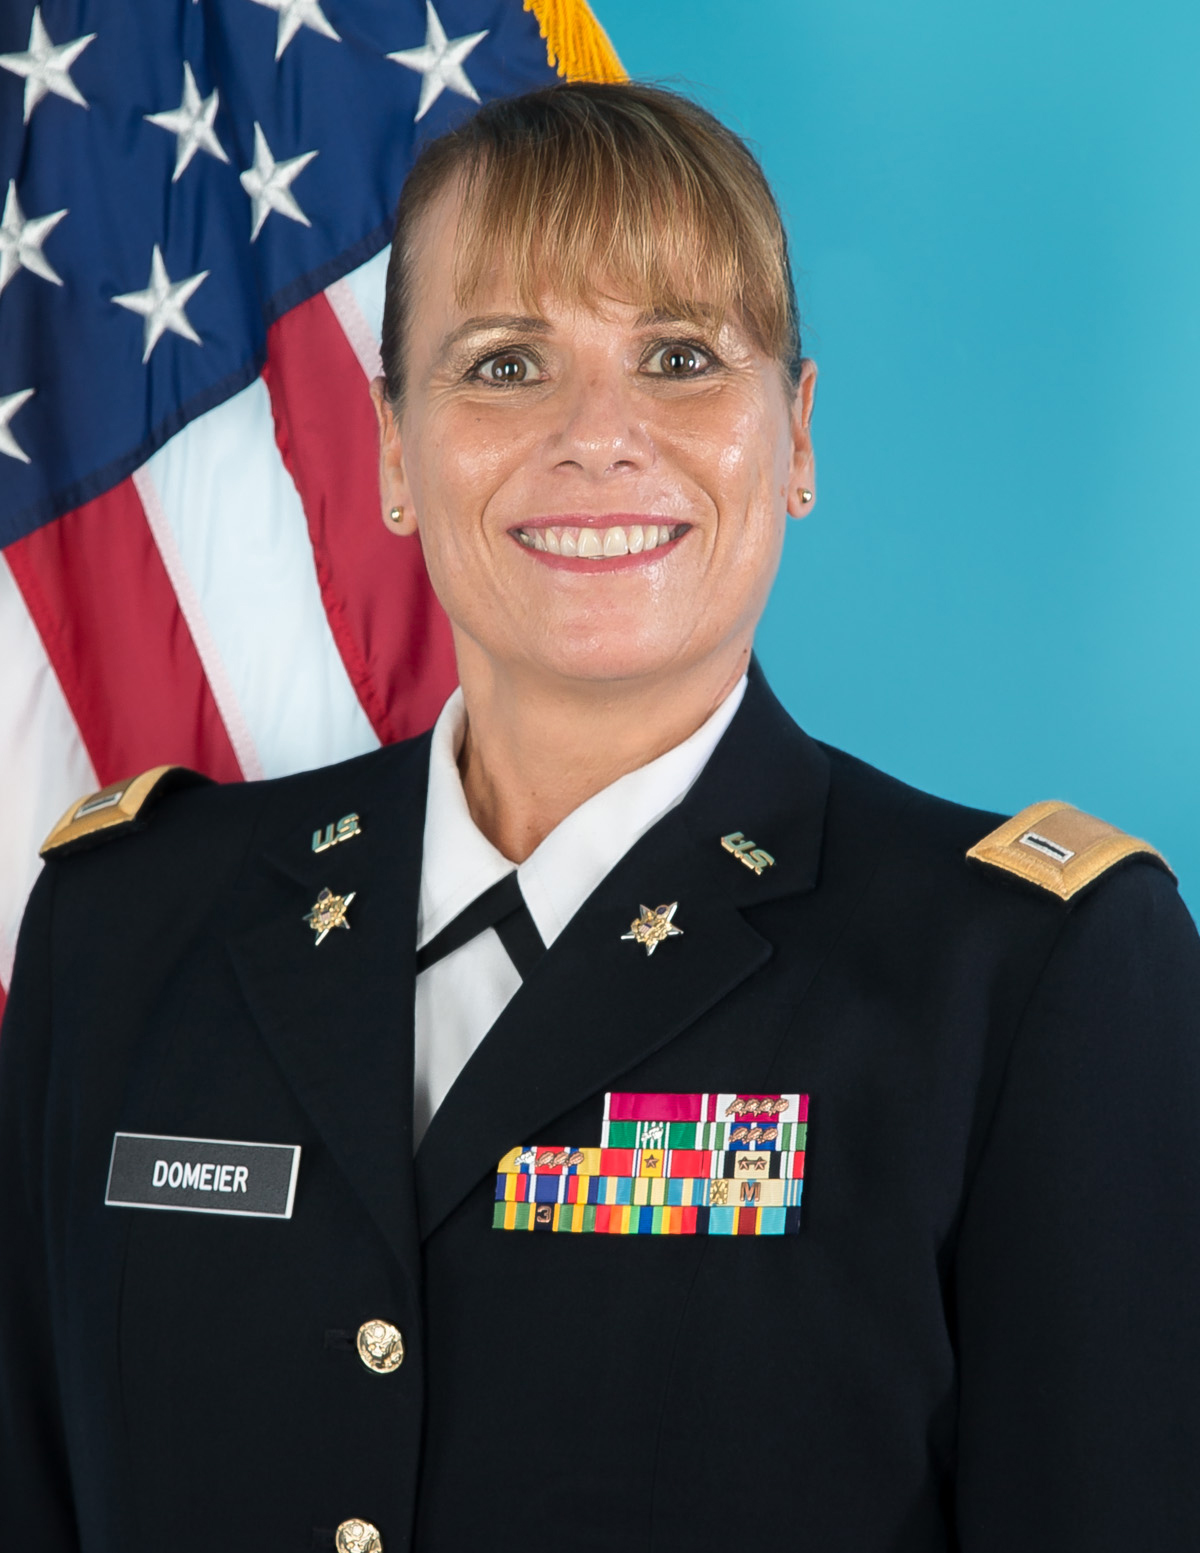 Chief Warrant Officer 5 Teresa A. Domeier